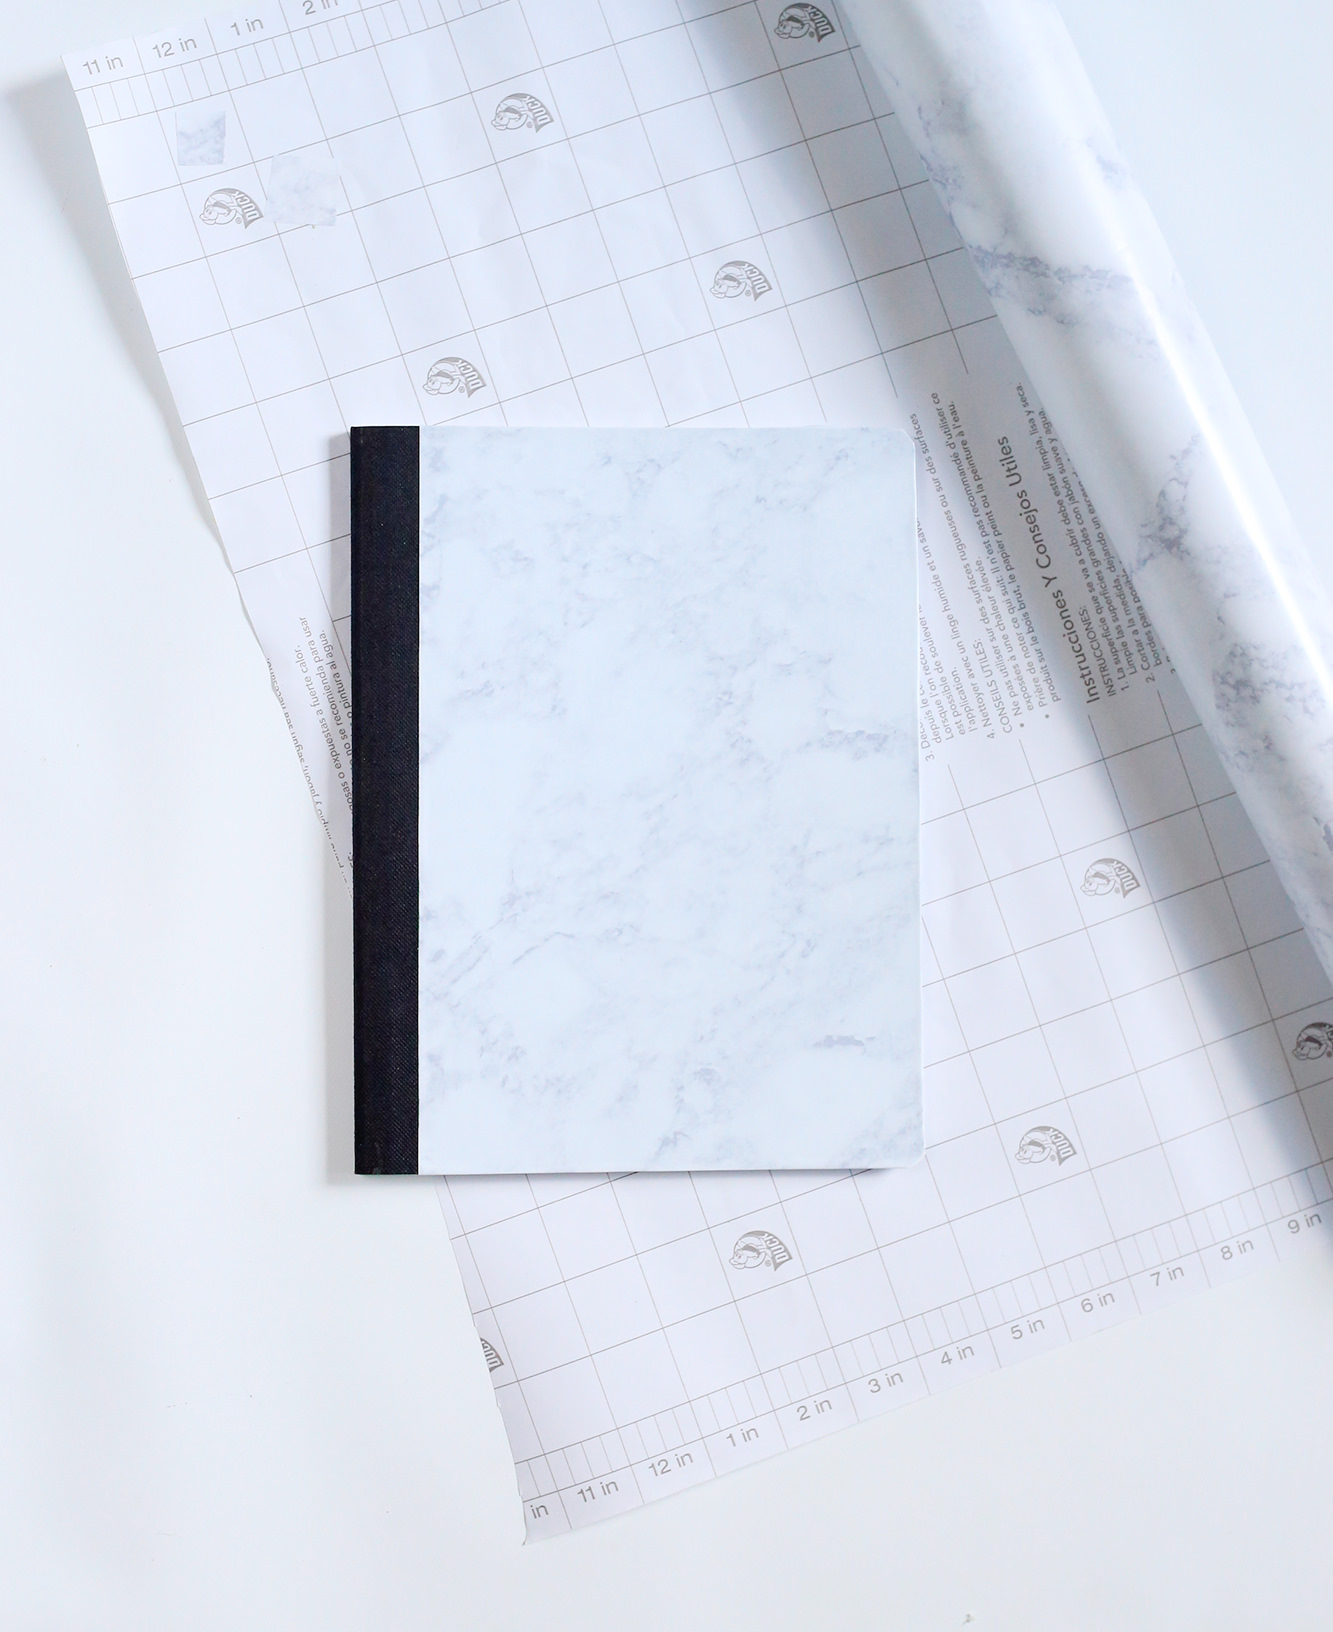 Contact paper notebook DIY via Lily & Val Living